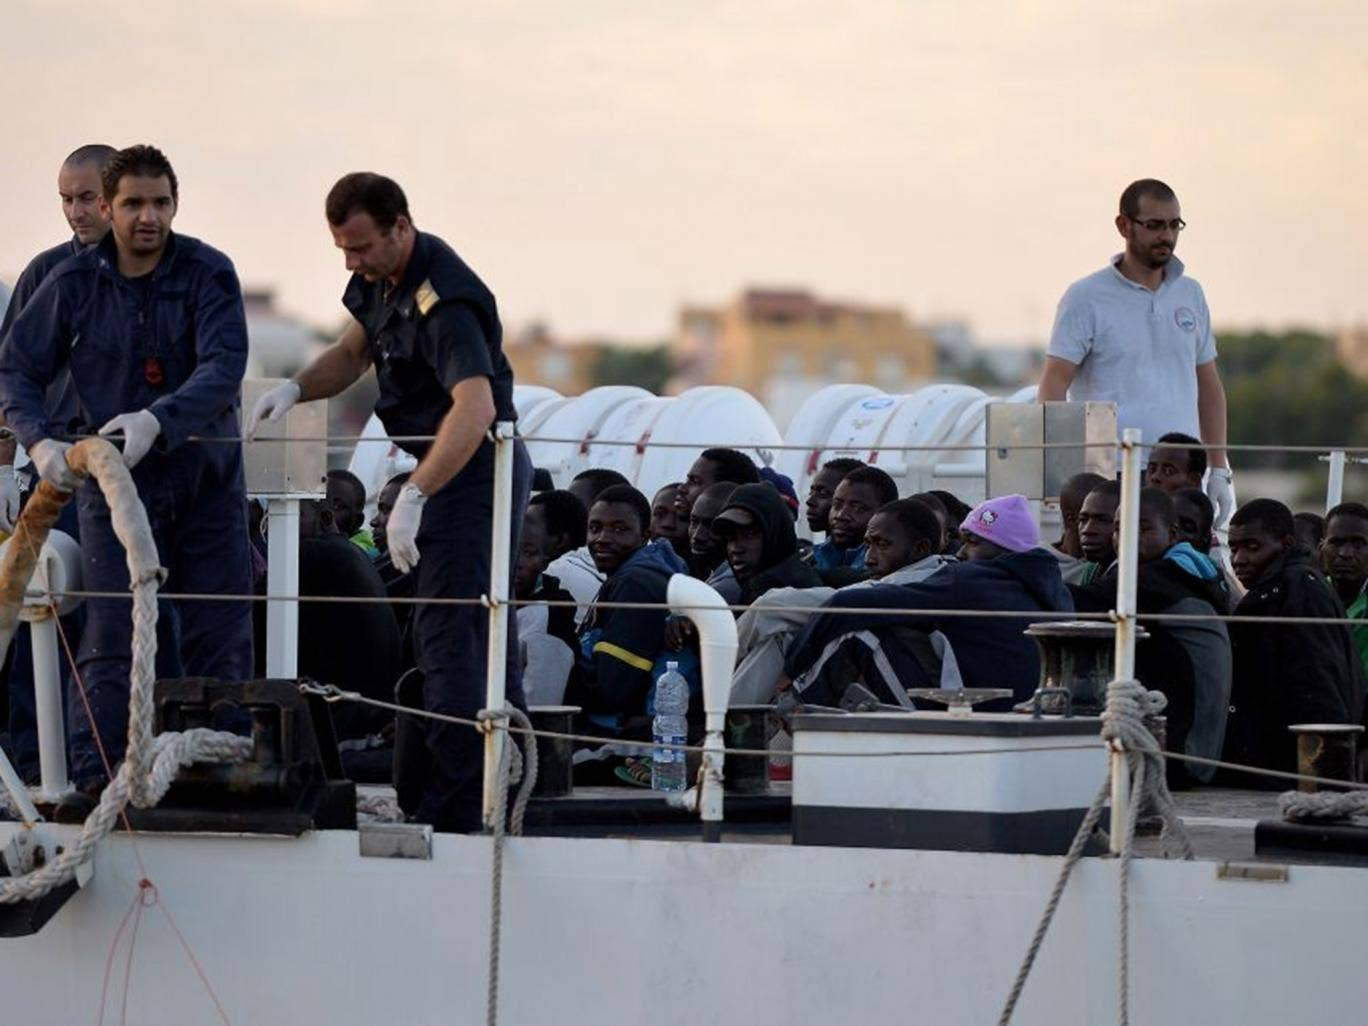 Some 100 migrants sit on the Guardia Costiera boat after being rescued off the shores of the island of Lampedusa last year